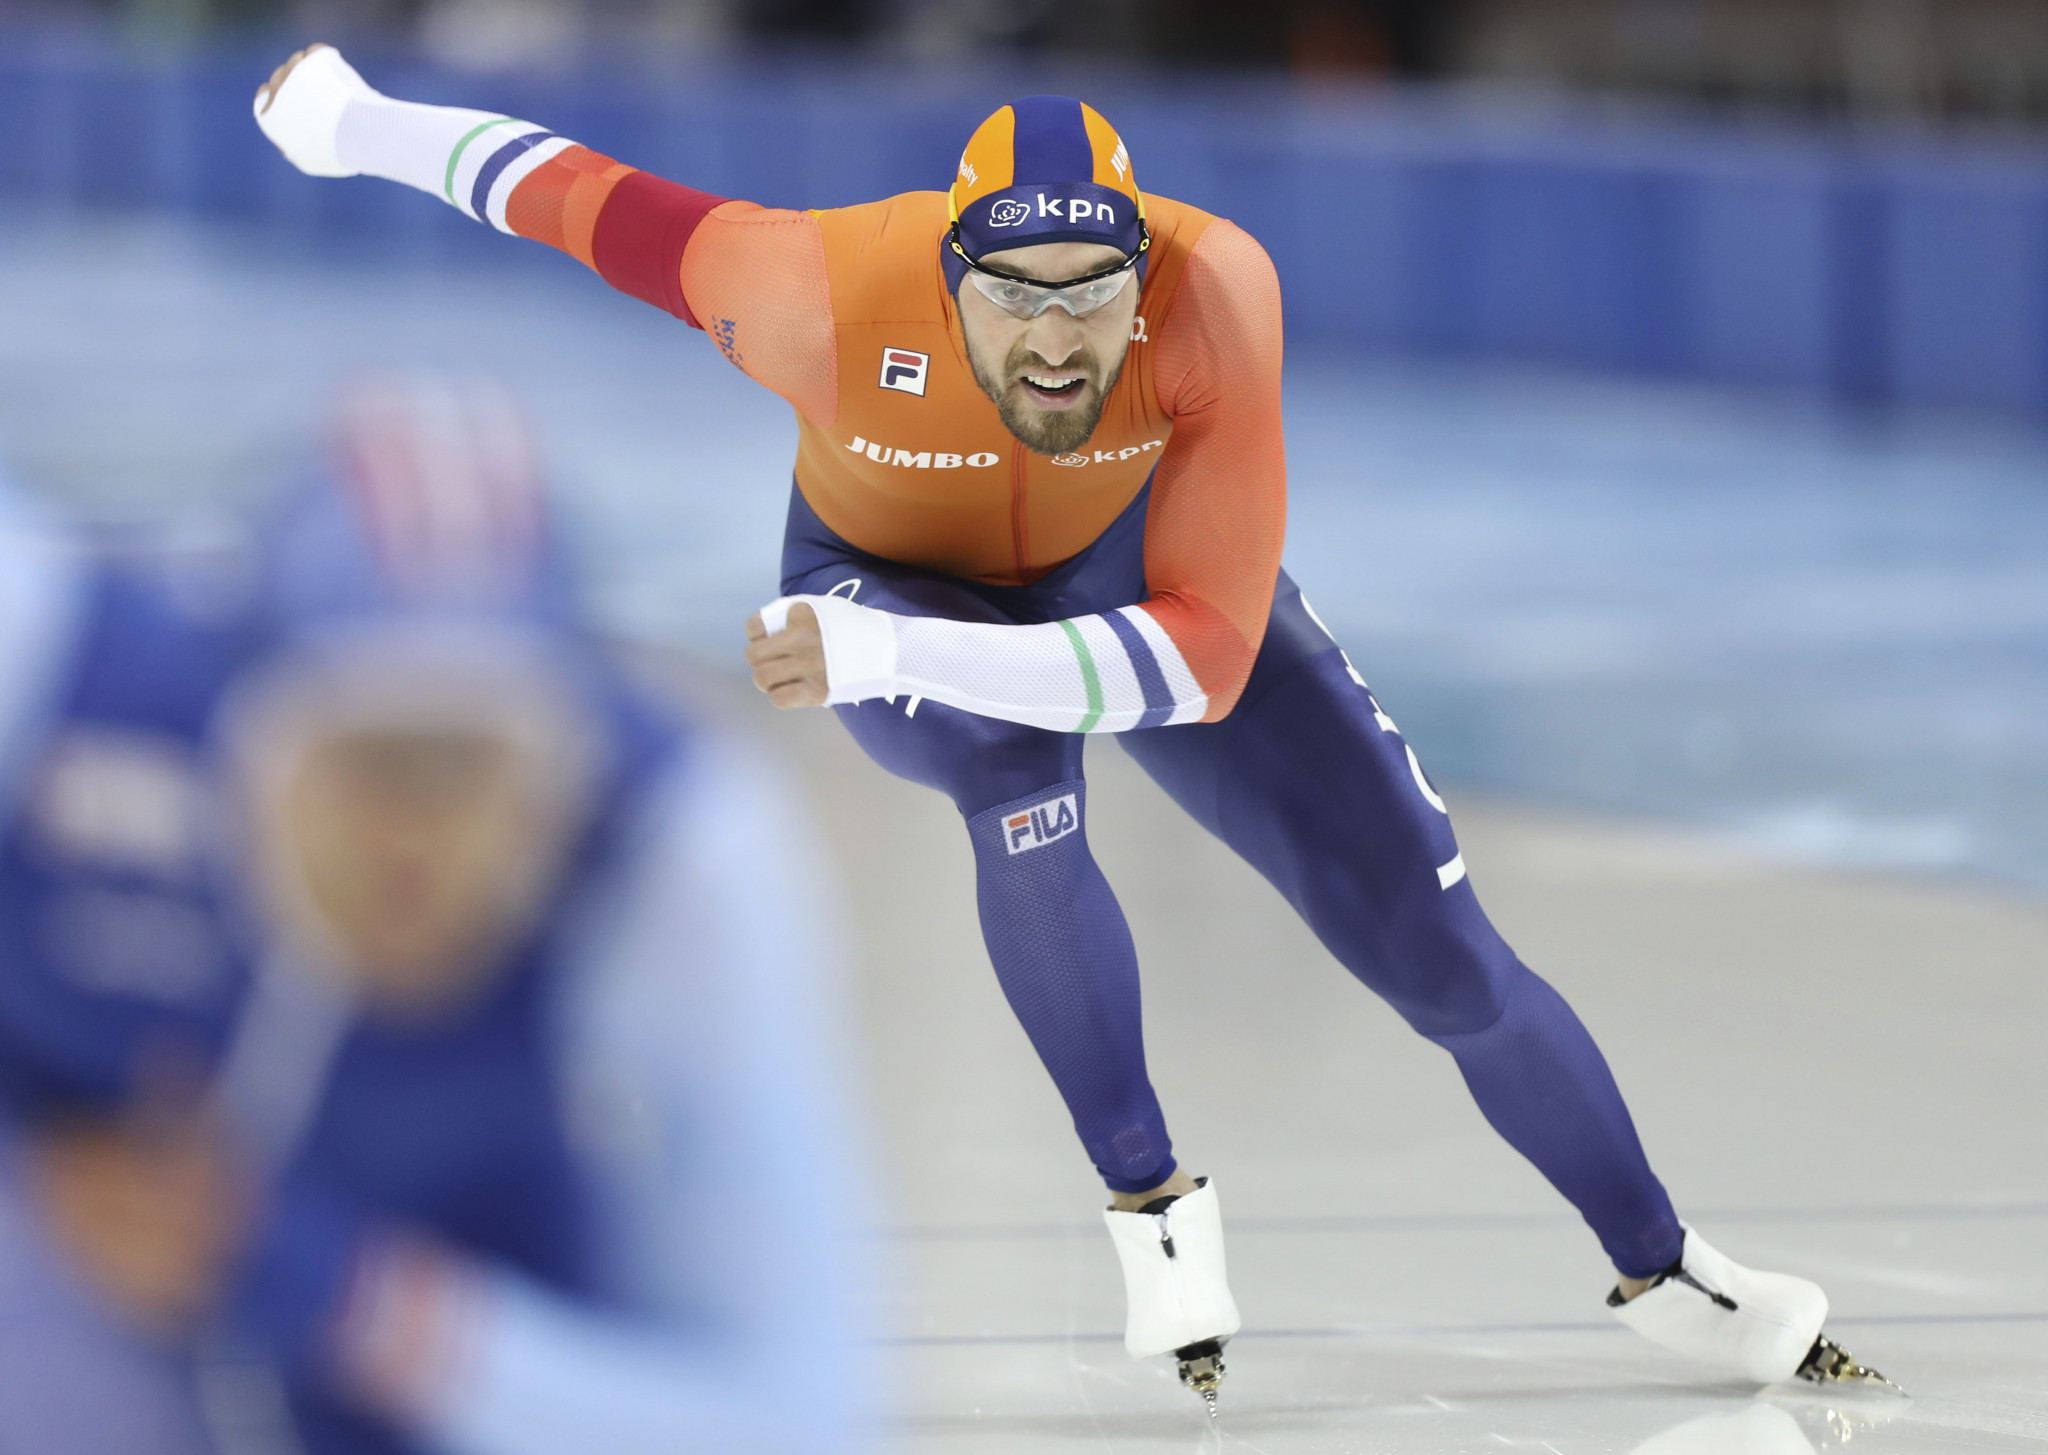 Nuis leads Dutch charge at Speed Skating World Cup final